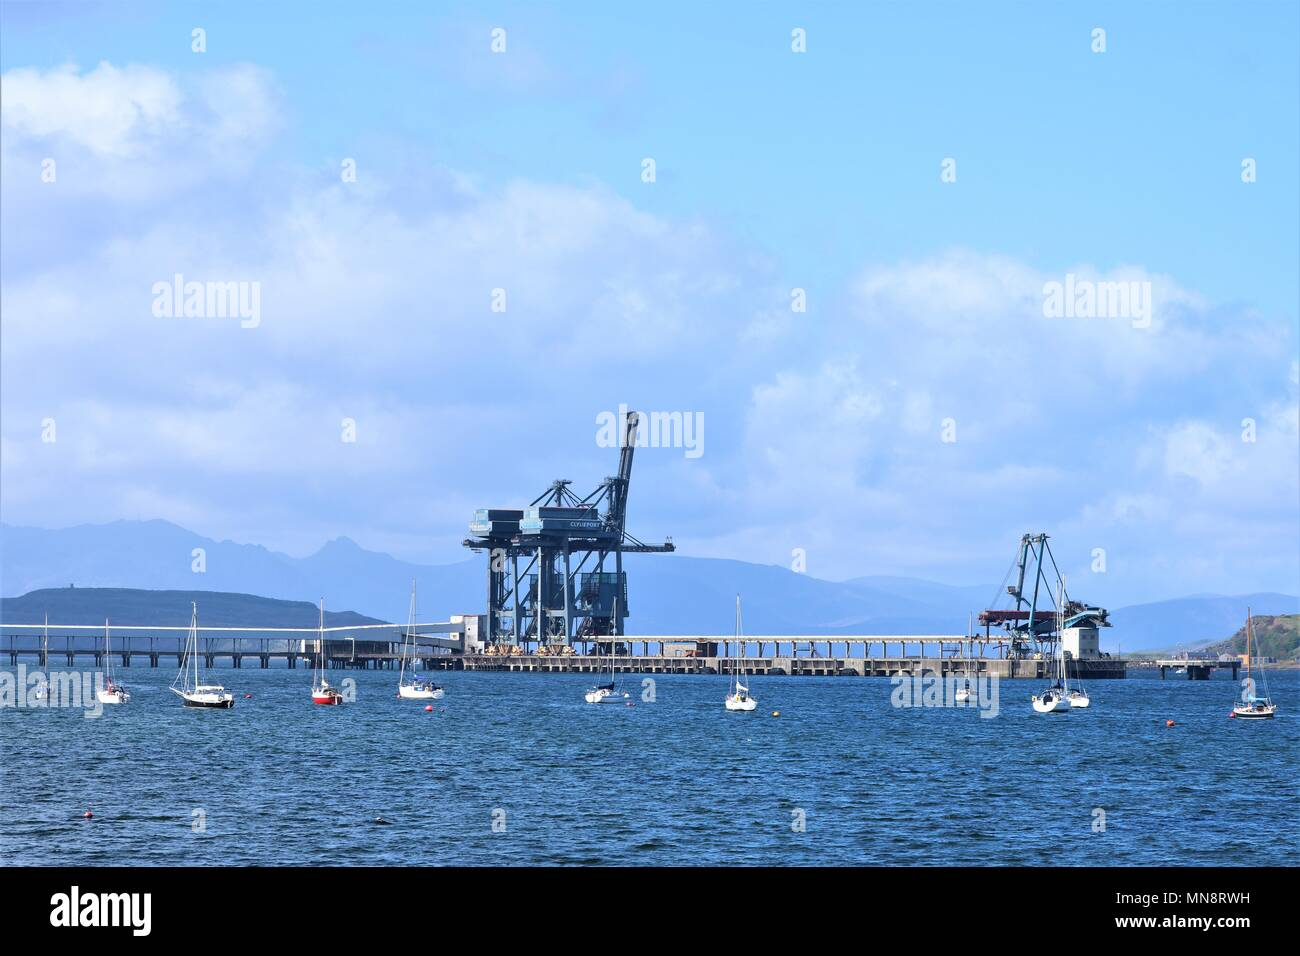 Cranes / ship loaders for unloading coal for Hunterston A Power Station at Clydeport Terminal, Largs, North Ayrshire, Scotland, UK - Stock Image